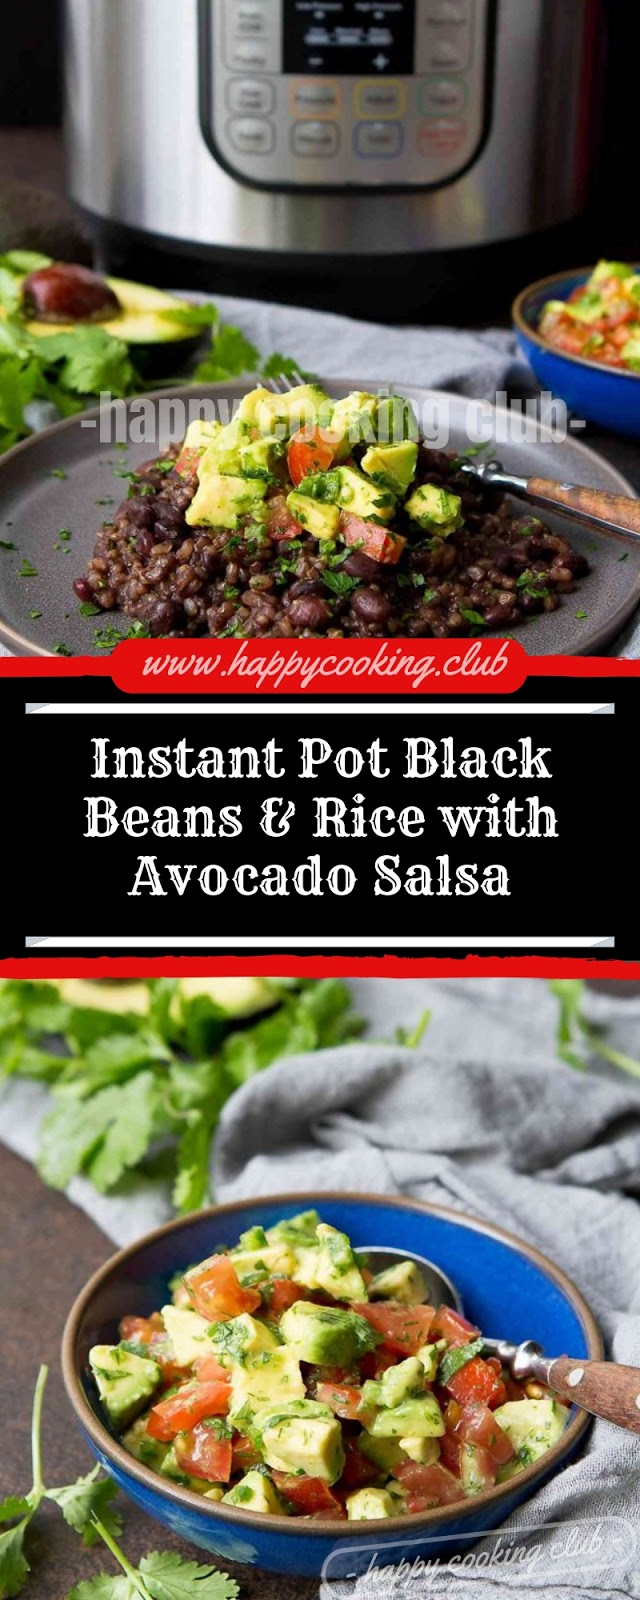 Instant Pot Black Beans & Rice with Avocado Salsa